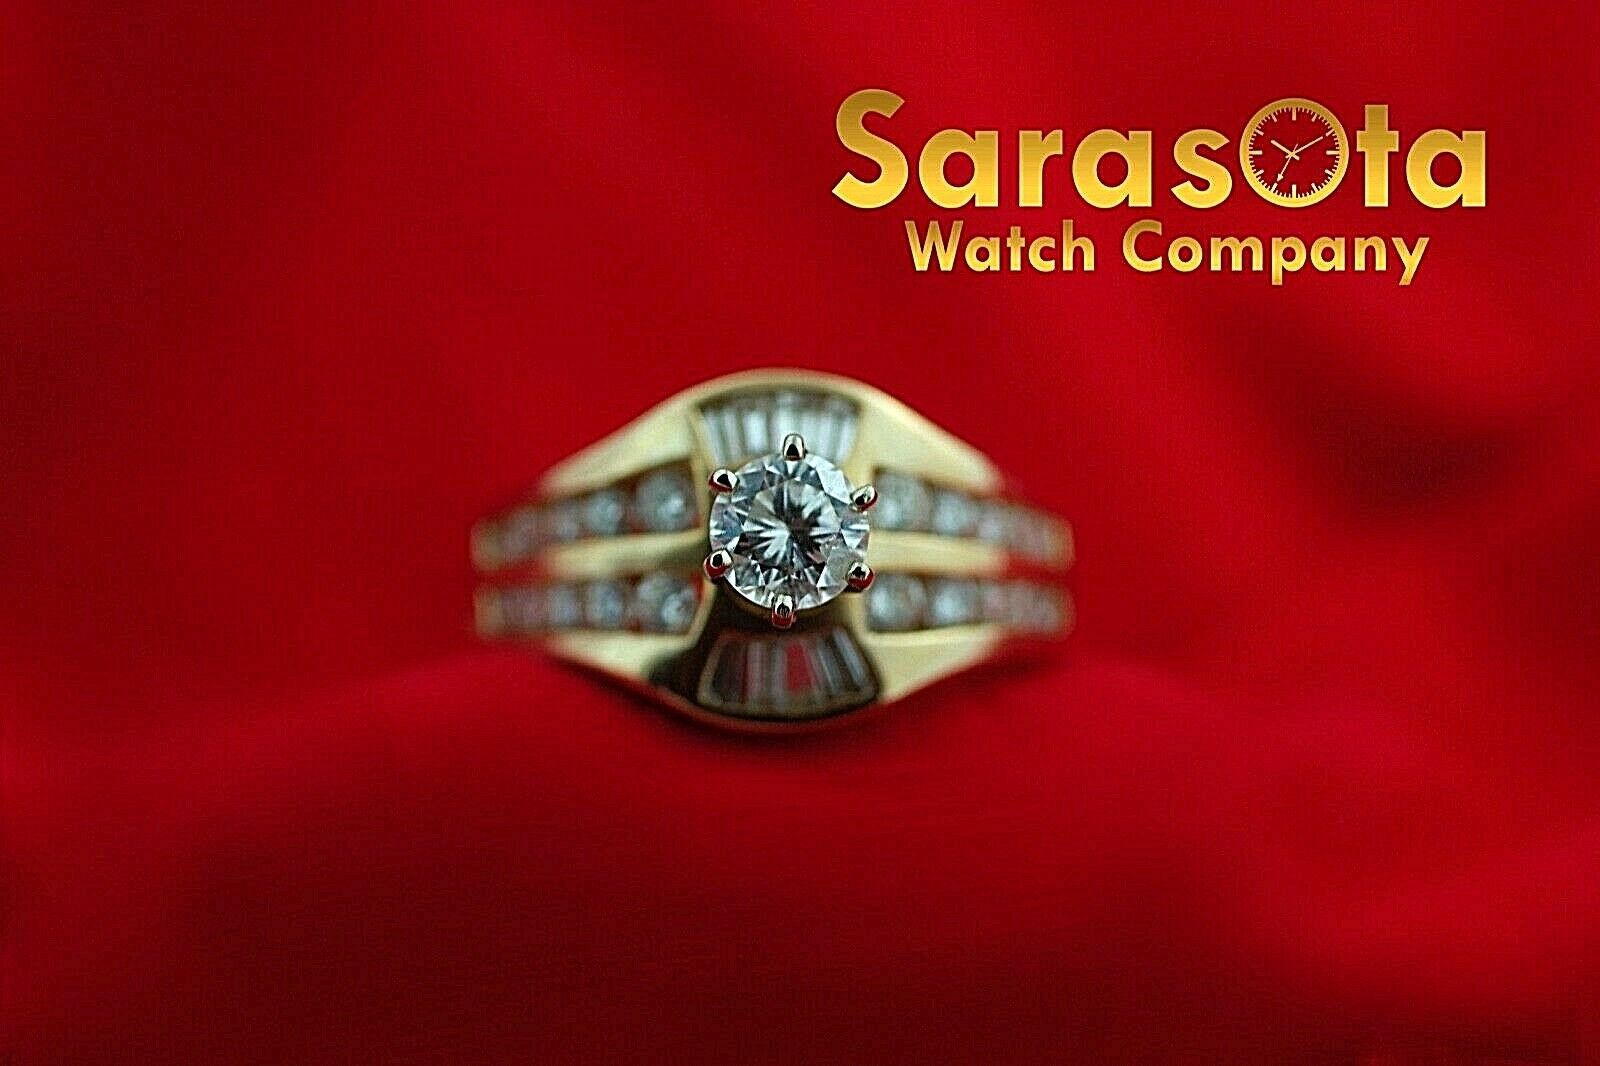 14k Yellow Gold 125ct Diamonds Solitaire with Accent Ring Size 75 132942110435 2